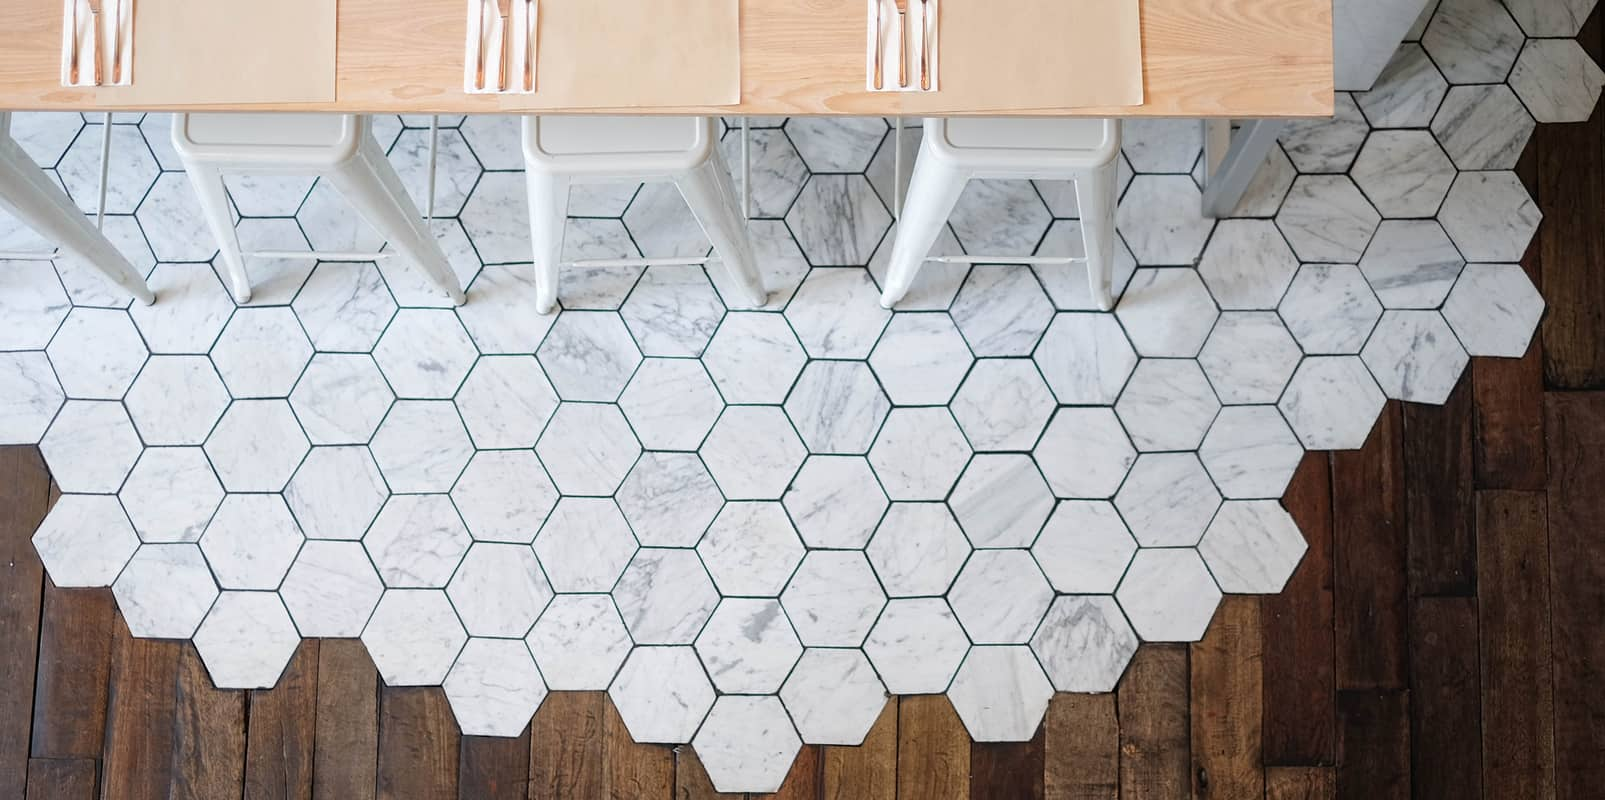 Erthcoverings White Wolf Hex Tile 16mm Stylish Fireplaces